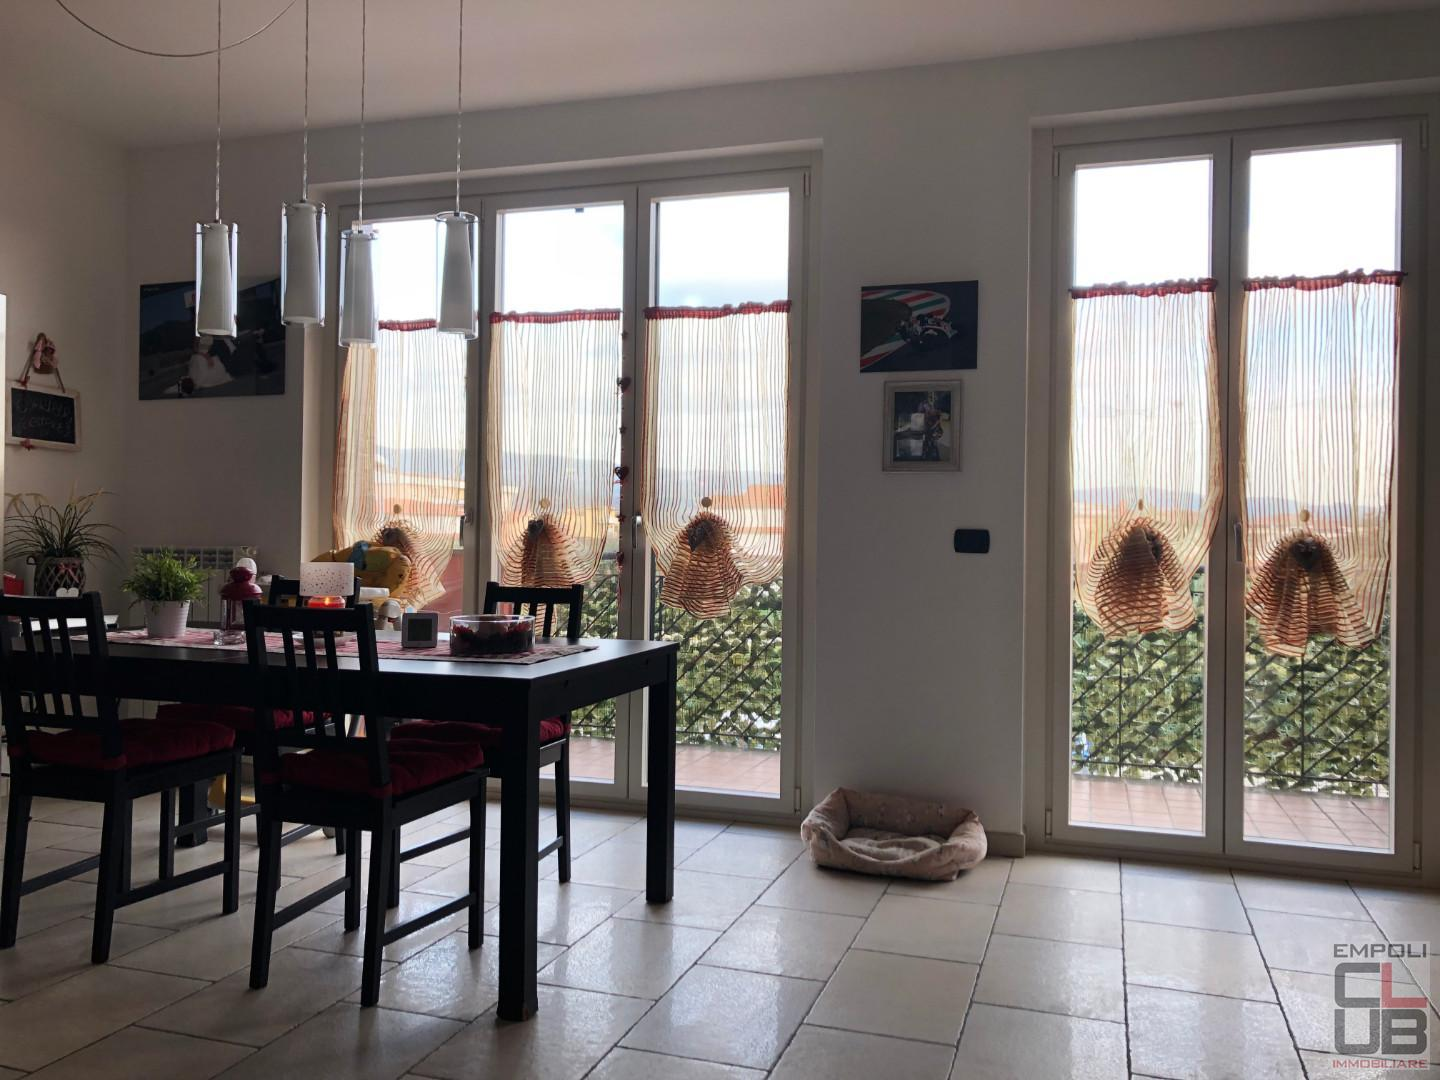 Apartment in Montelupo Fiorentino